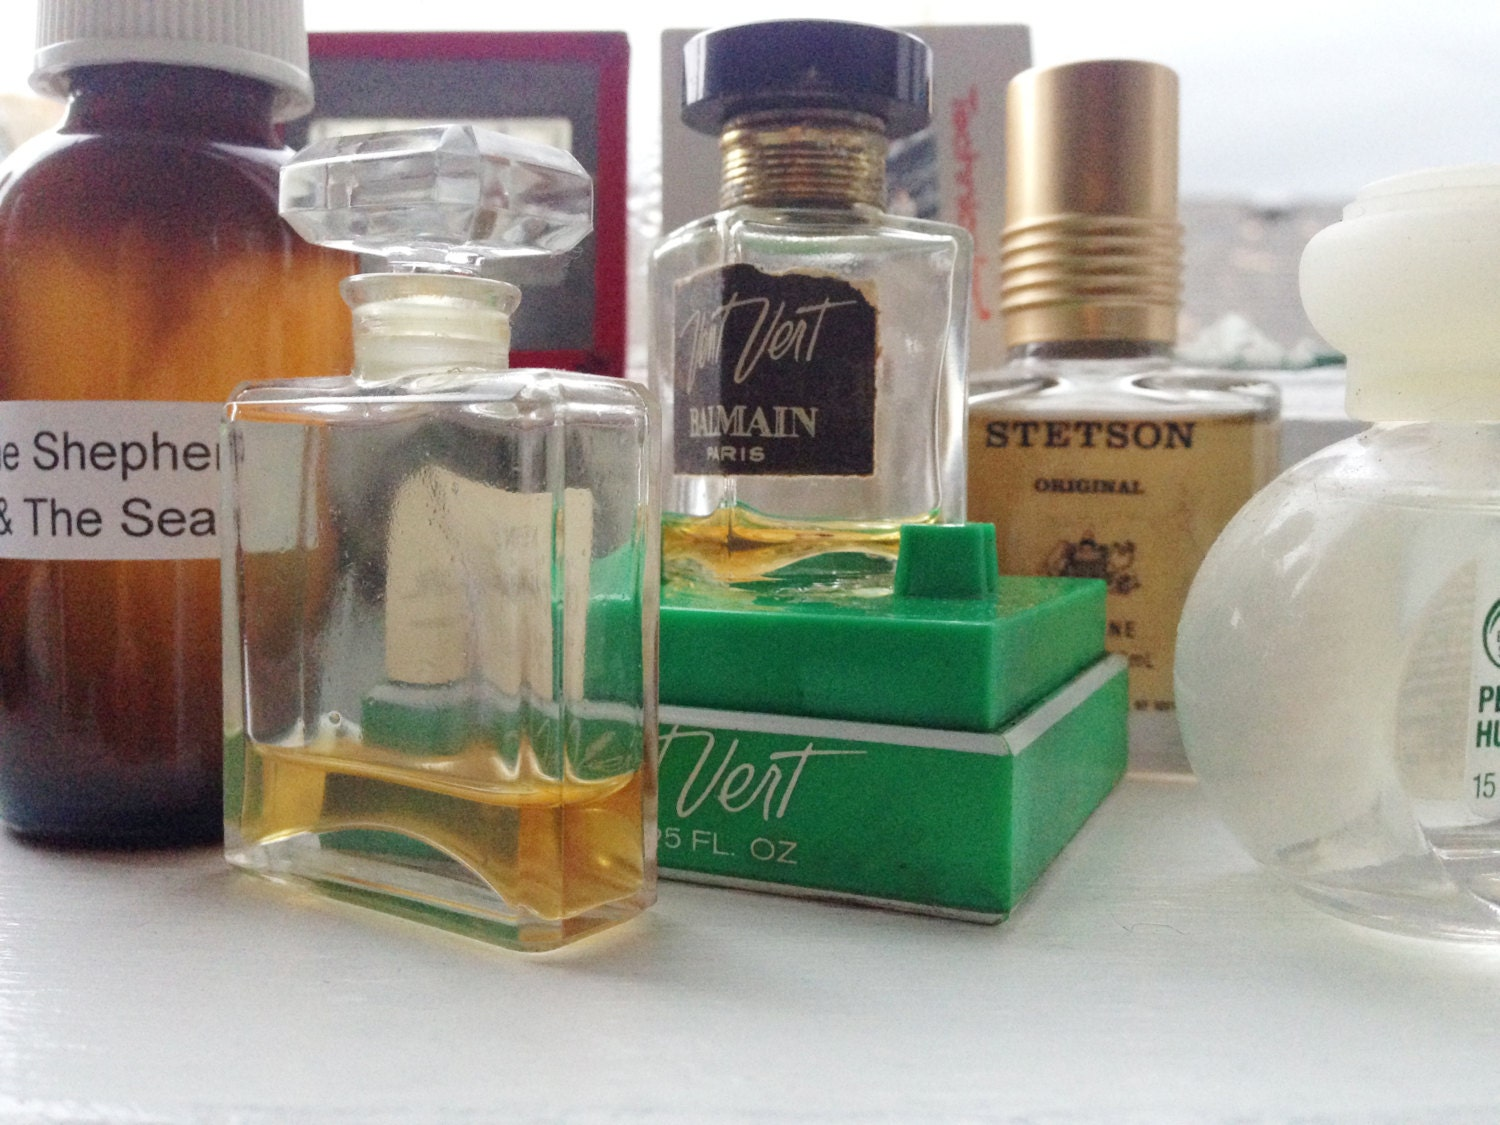 the shepherd and the sea perfume + unisex + natural witch hazel base + green tea + tomato leaf + absinthe + ambergris